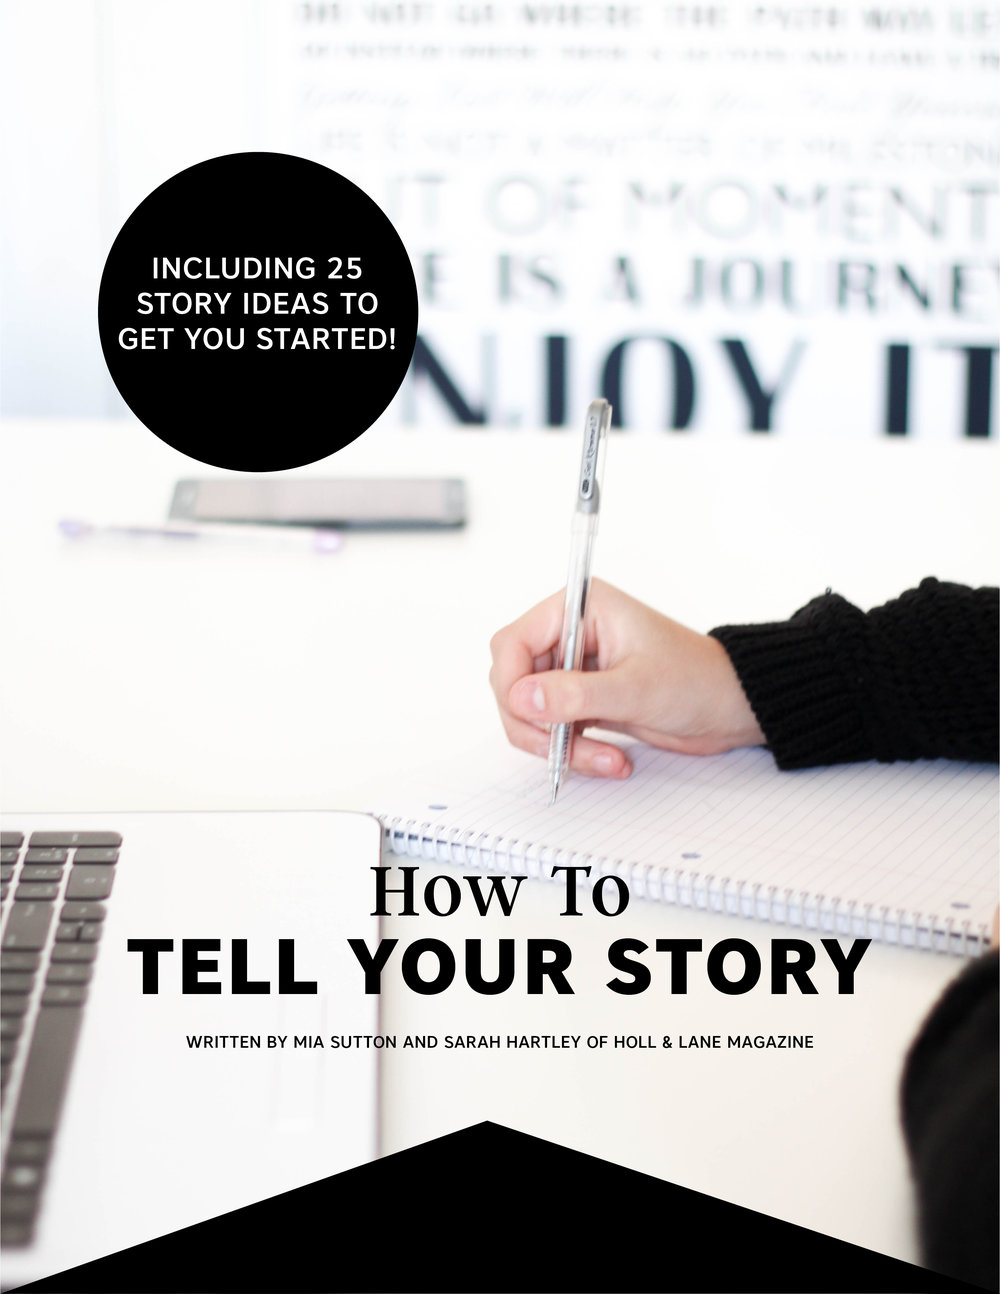 Tell+Your+Story+Cover.jpg